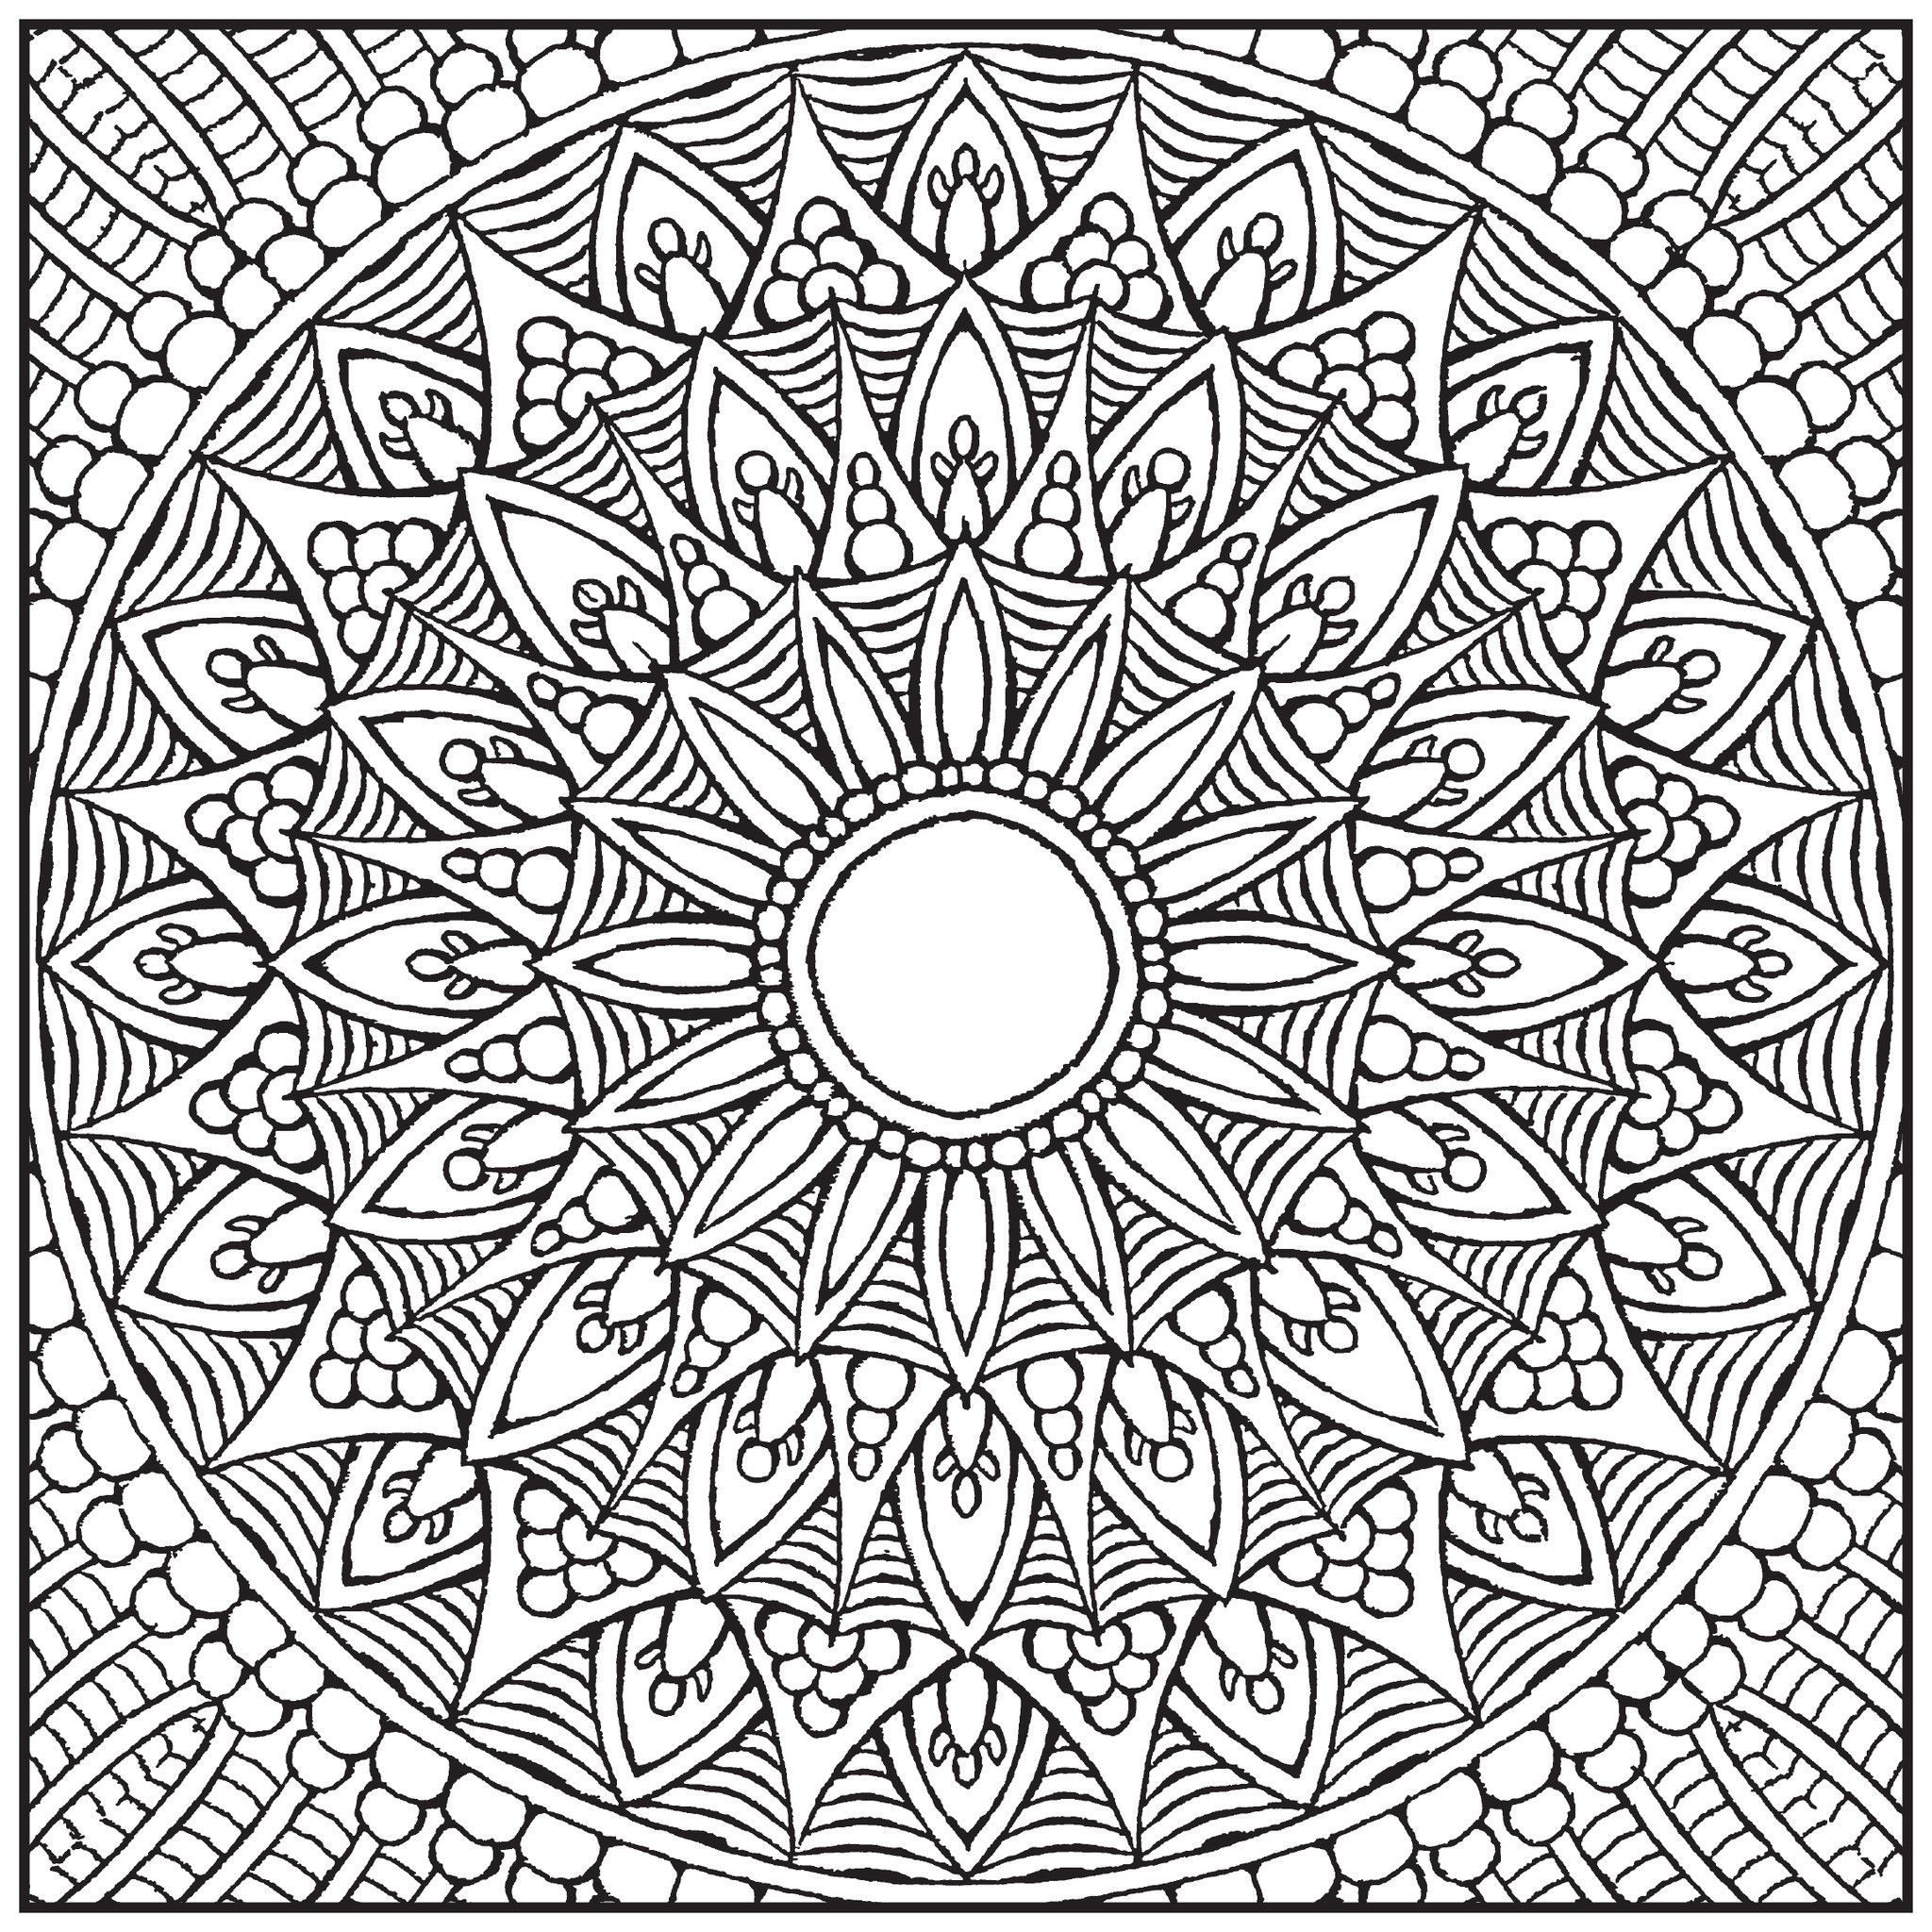 Color With Music Mandalas Adult Coloring Book Blank PageGoogle Search